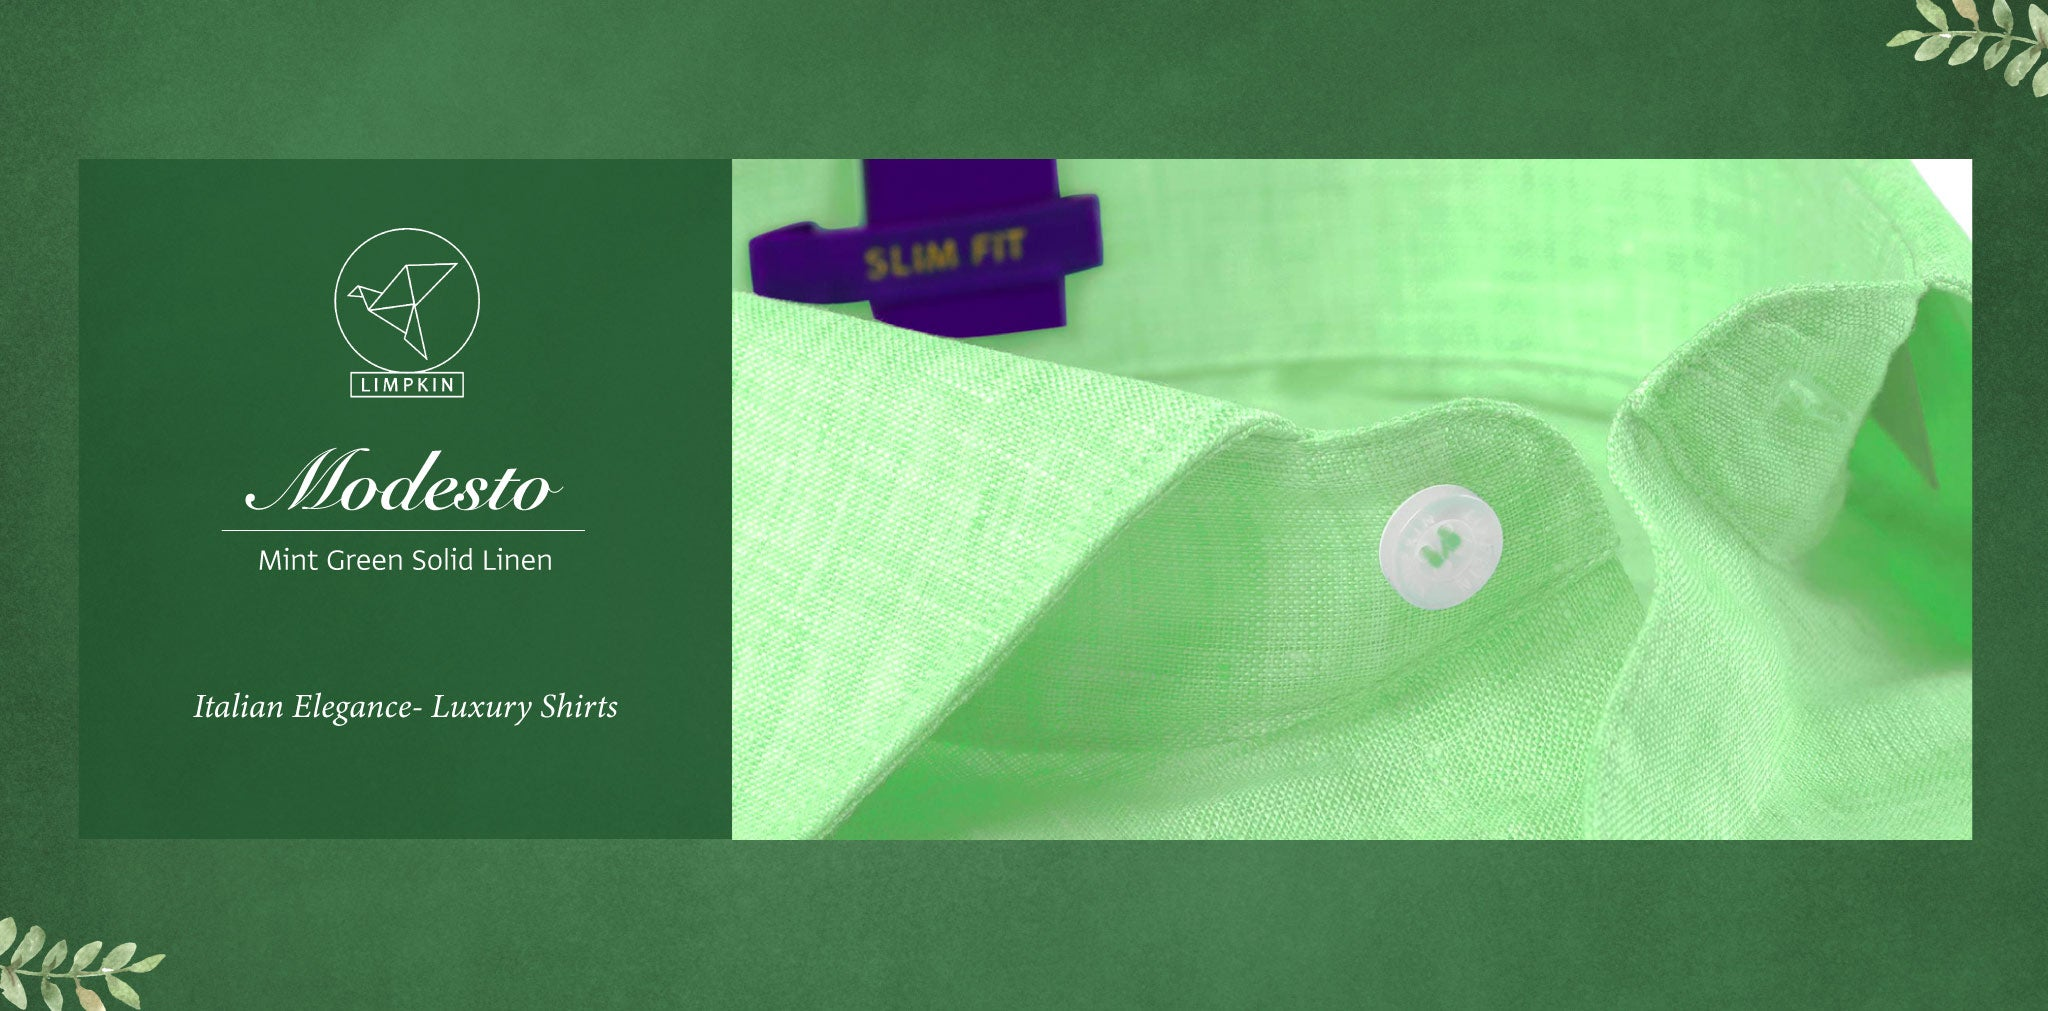 Modesto- Mint Green Solid Linen- 66's Lea Pure Italian Linen- Delivery from 20th Oct - Banner